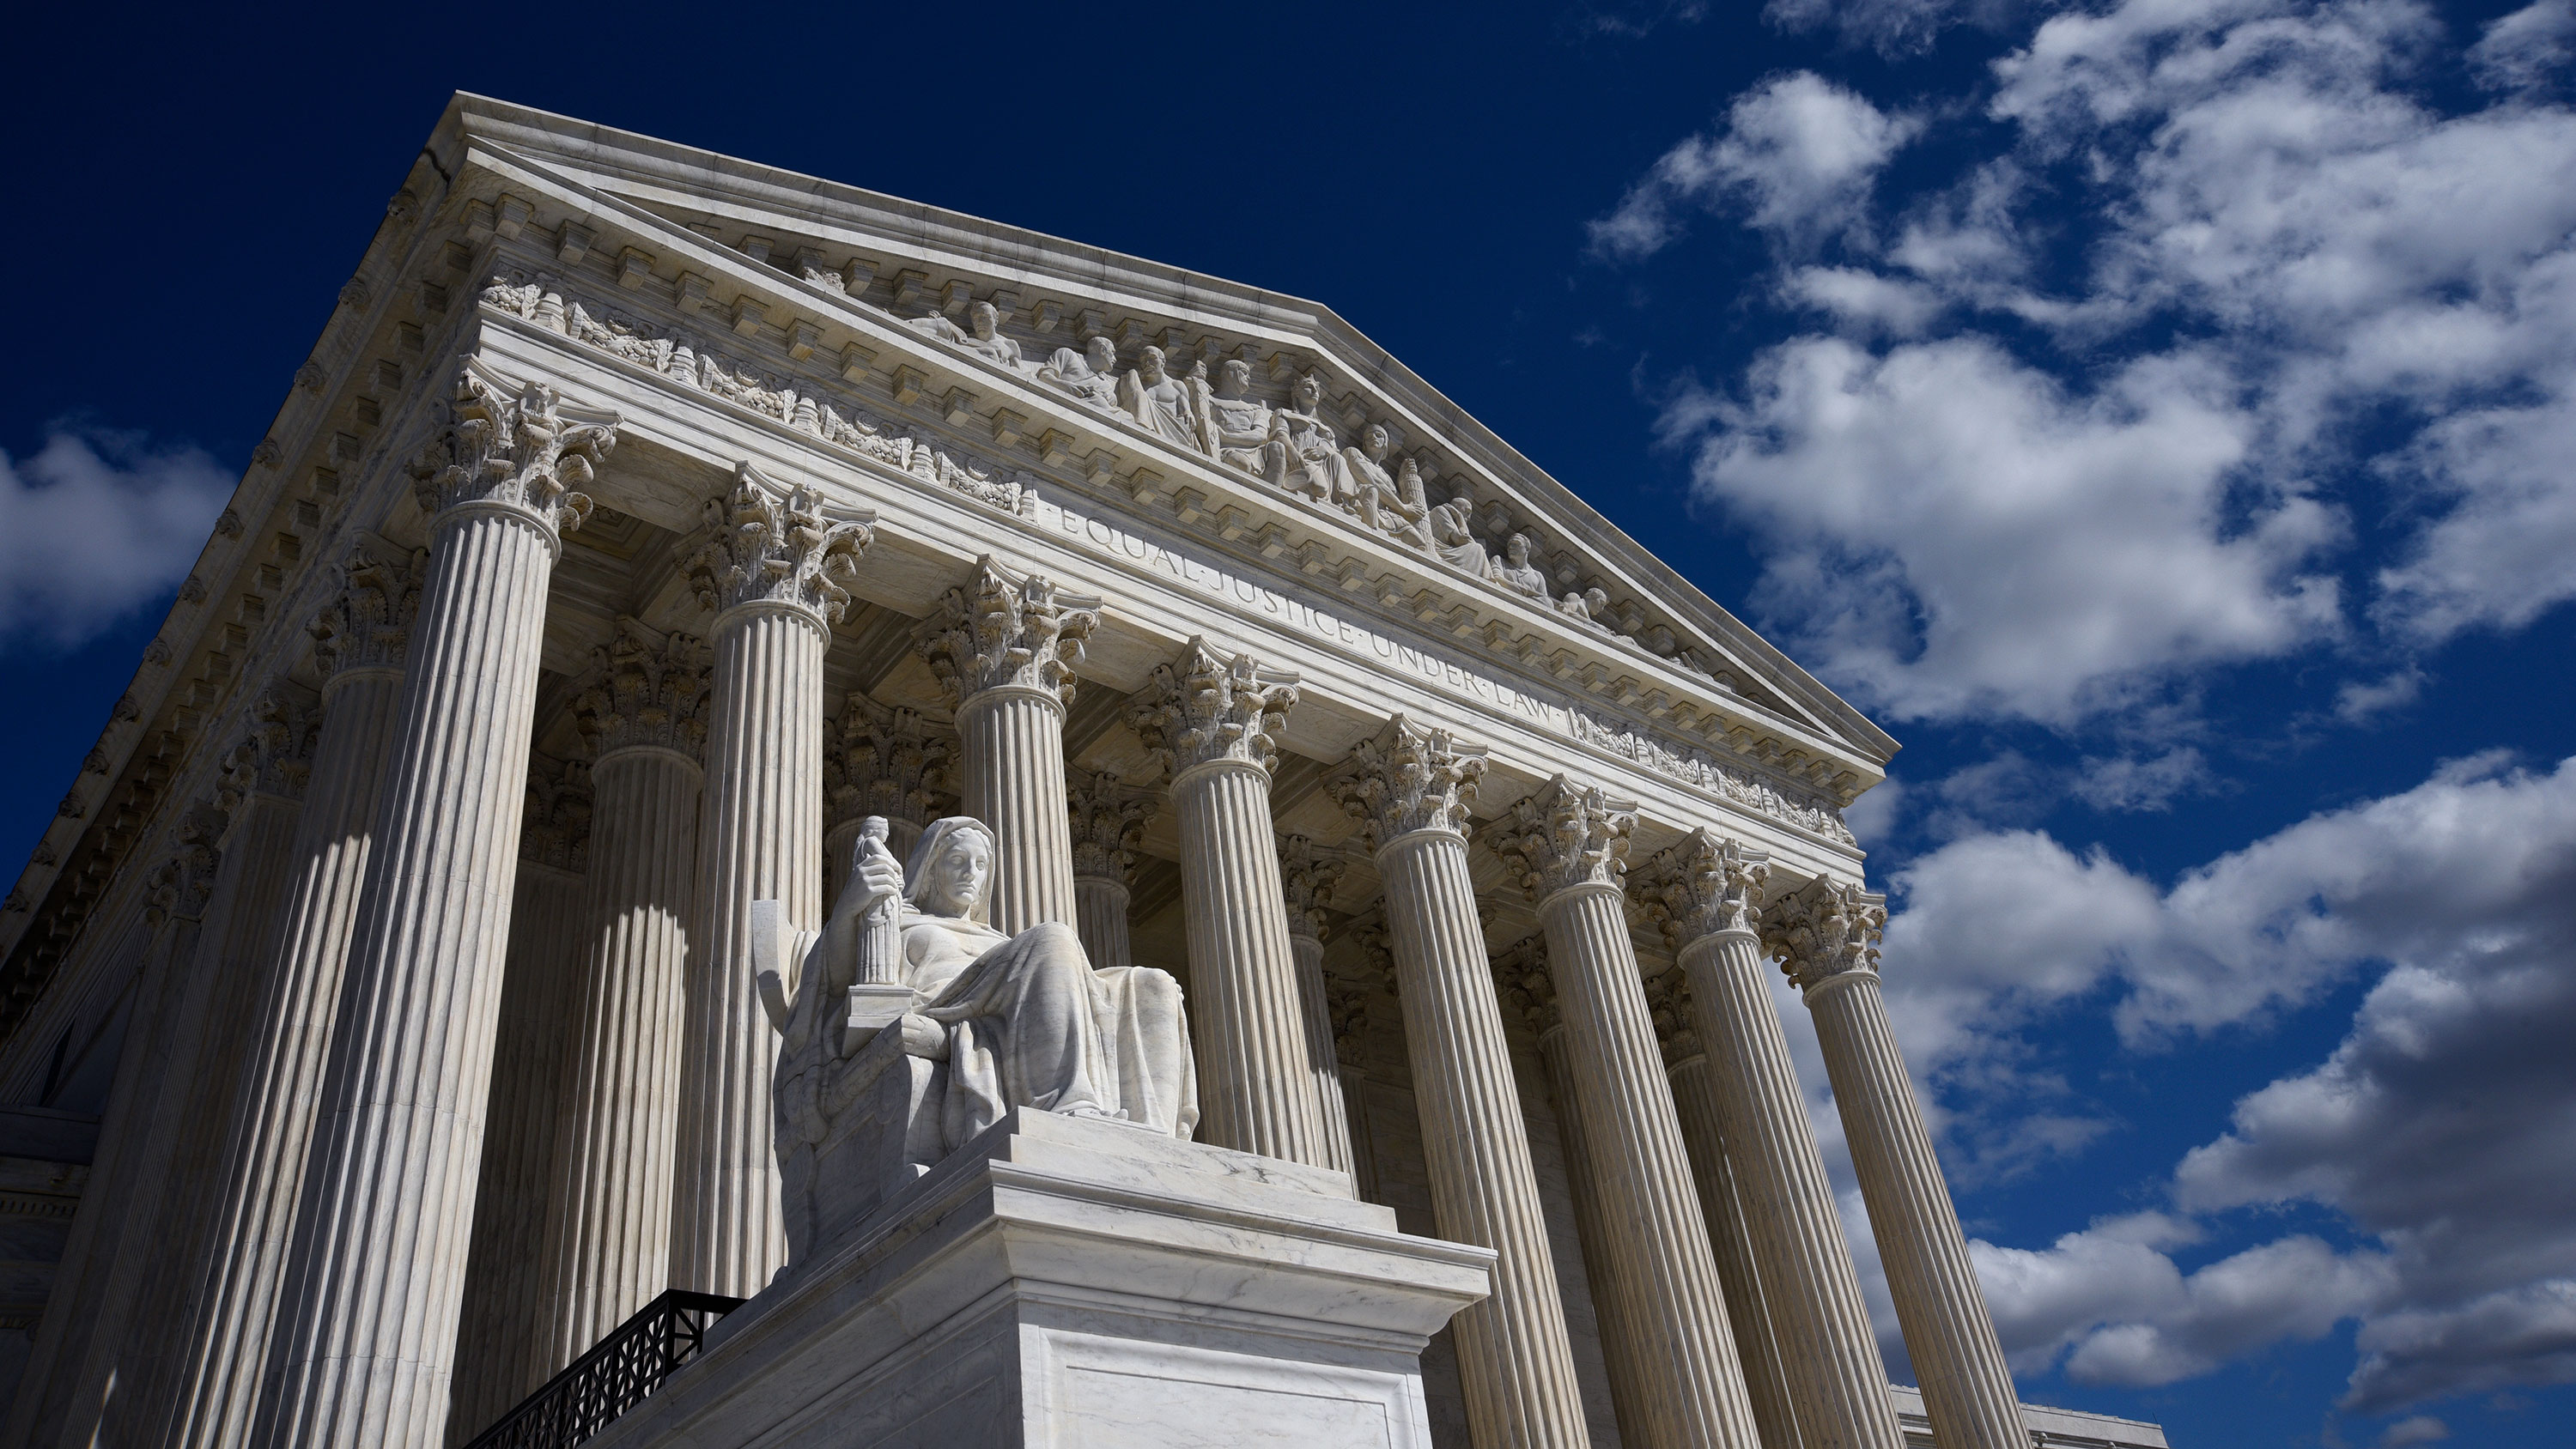 Undocumented immigrant has burden of proof to challenge deportation order, Supreme Court rules